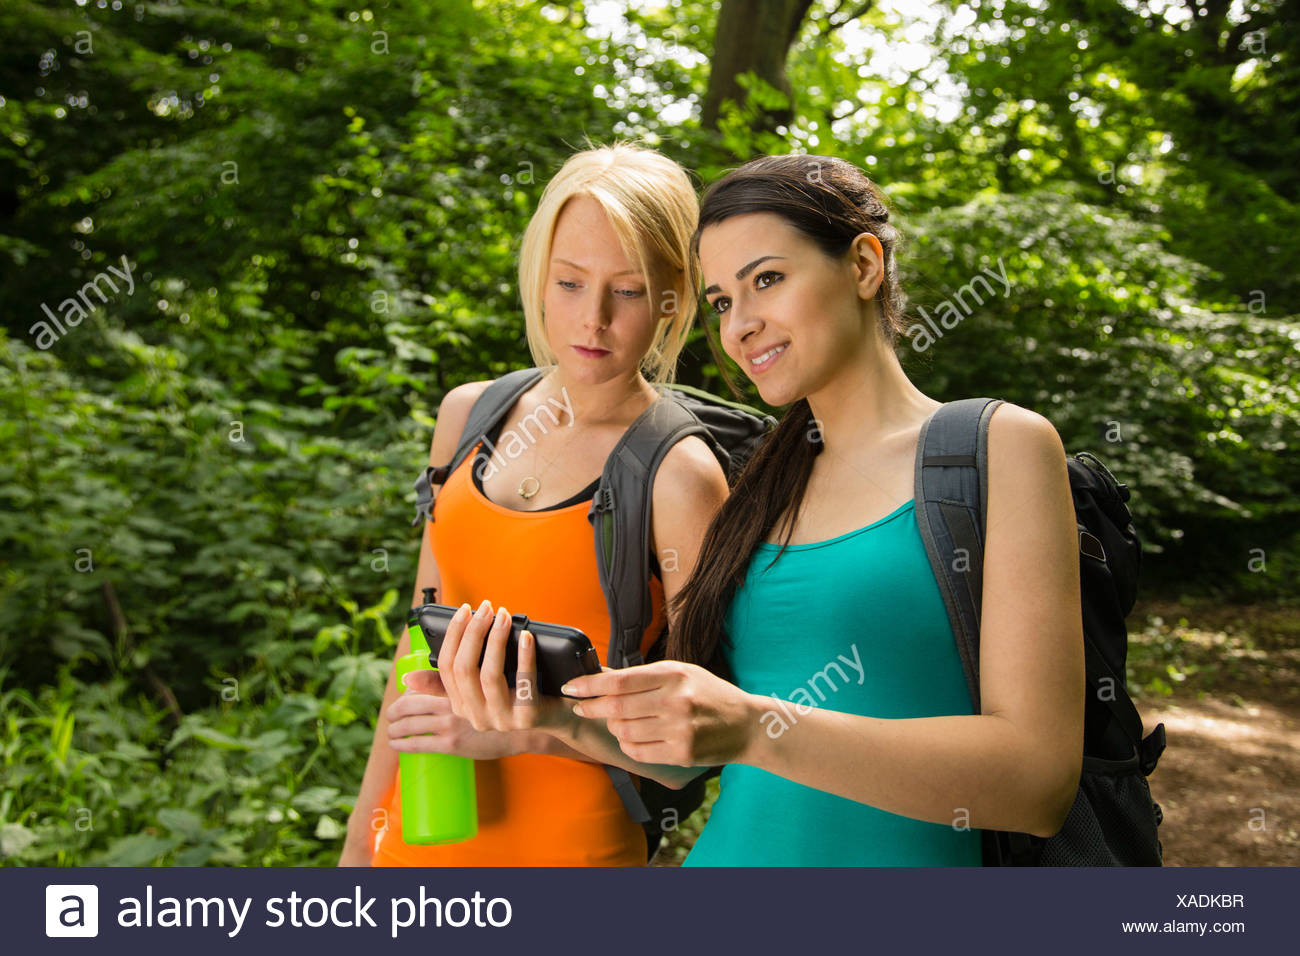 Women out walking in forest, looking at GPS - Stock Image